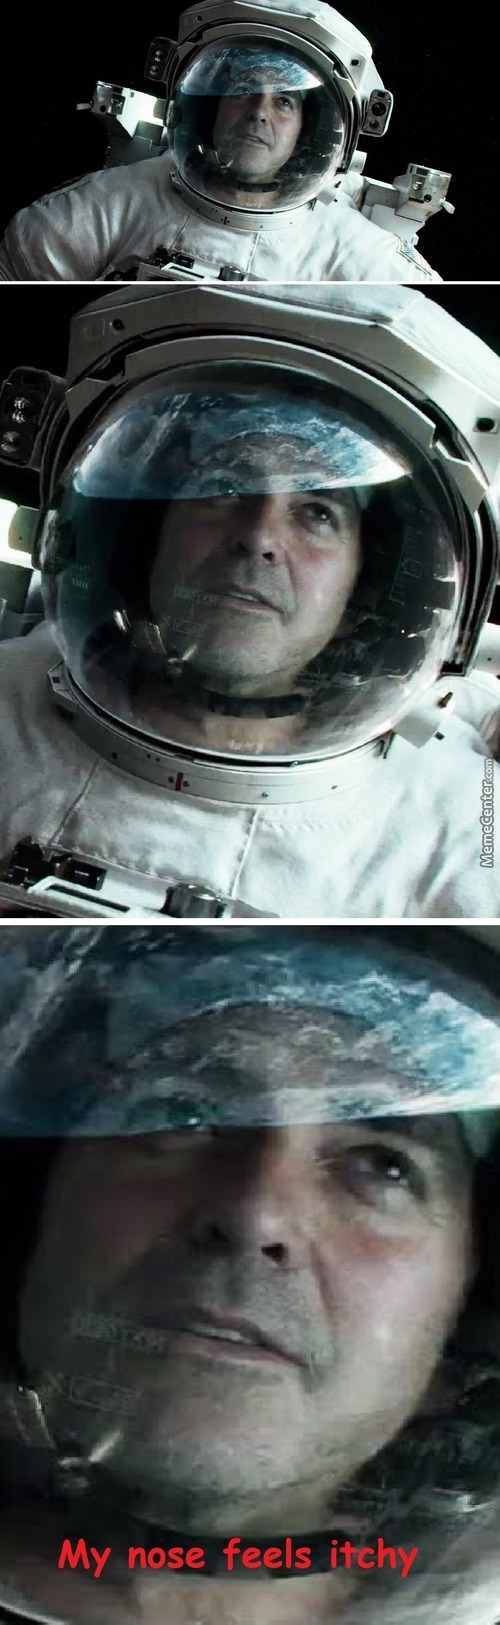 The Disadvantages Of Wearing A Space Suit